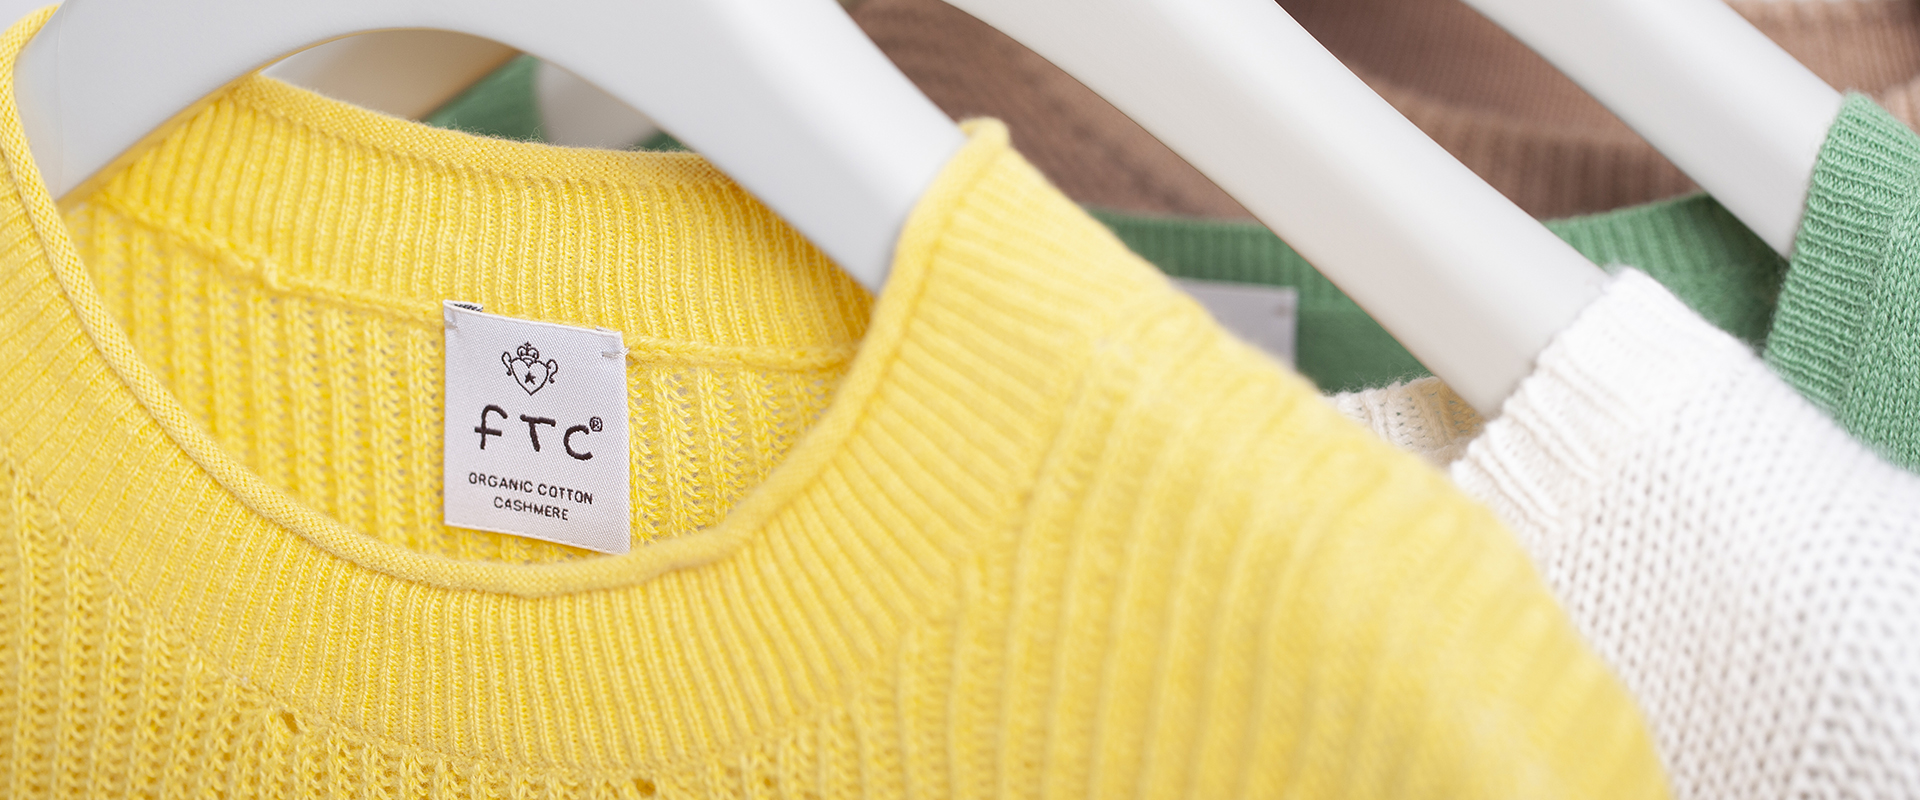 ftc-cashmere_about_lines_organic-cotton